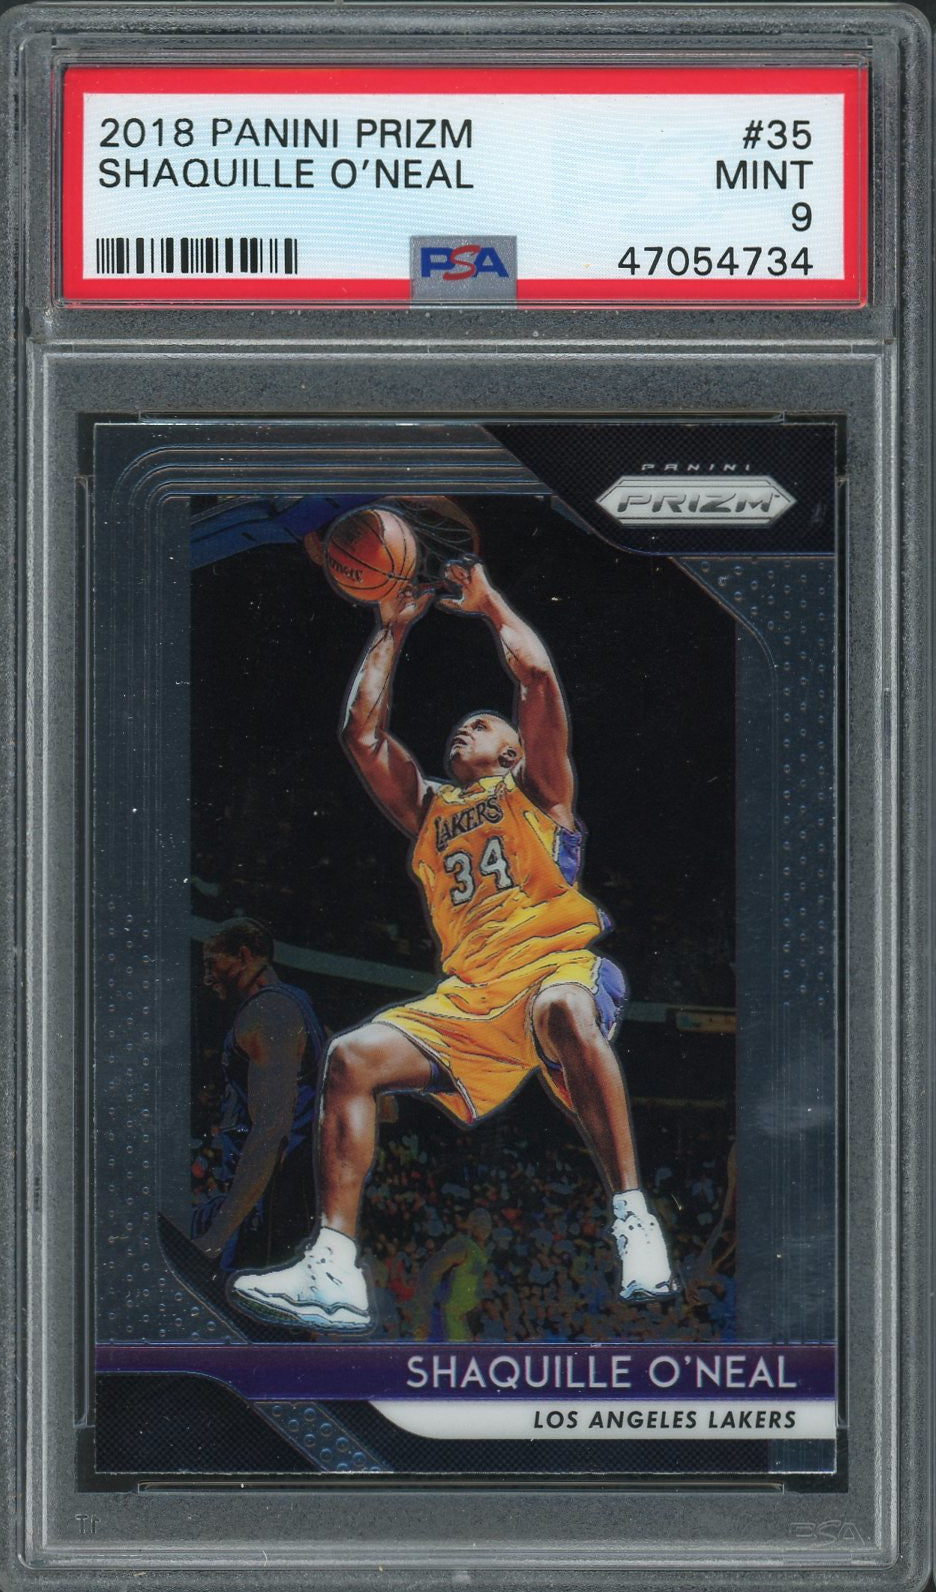 Shaquille O'Neal Los Angeles Lakers 2018 Panini Prizm Basketball Card #35 Graded PSA 9 MINT-Powers Sports Memorabilia